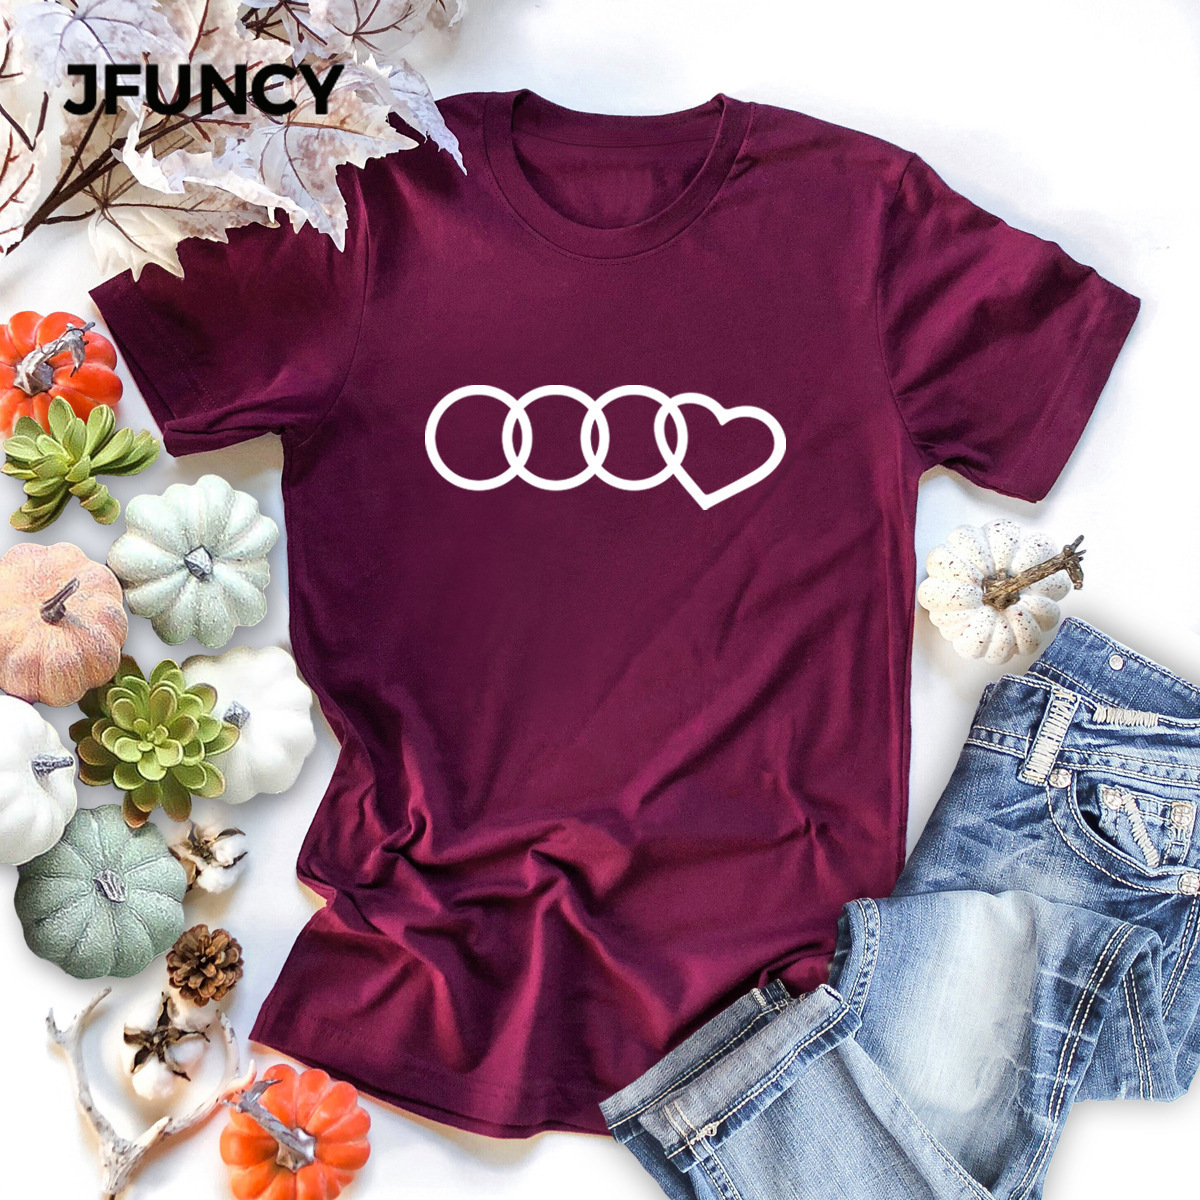 JFUNCY Spoof Brand Print Women T-Shirt New 100% Cotton Woman Shirts Plus Size Summer Casual Tshirt Short Sleeve Mujer Tees Tops